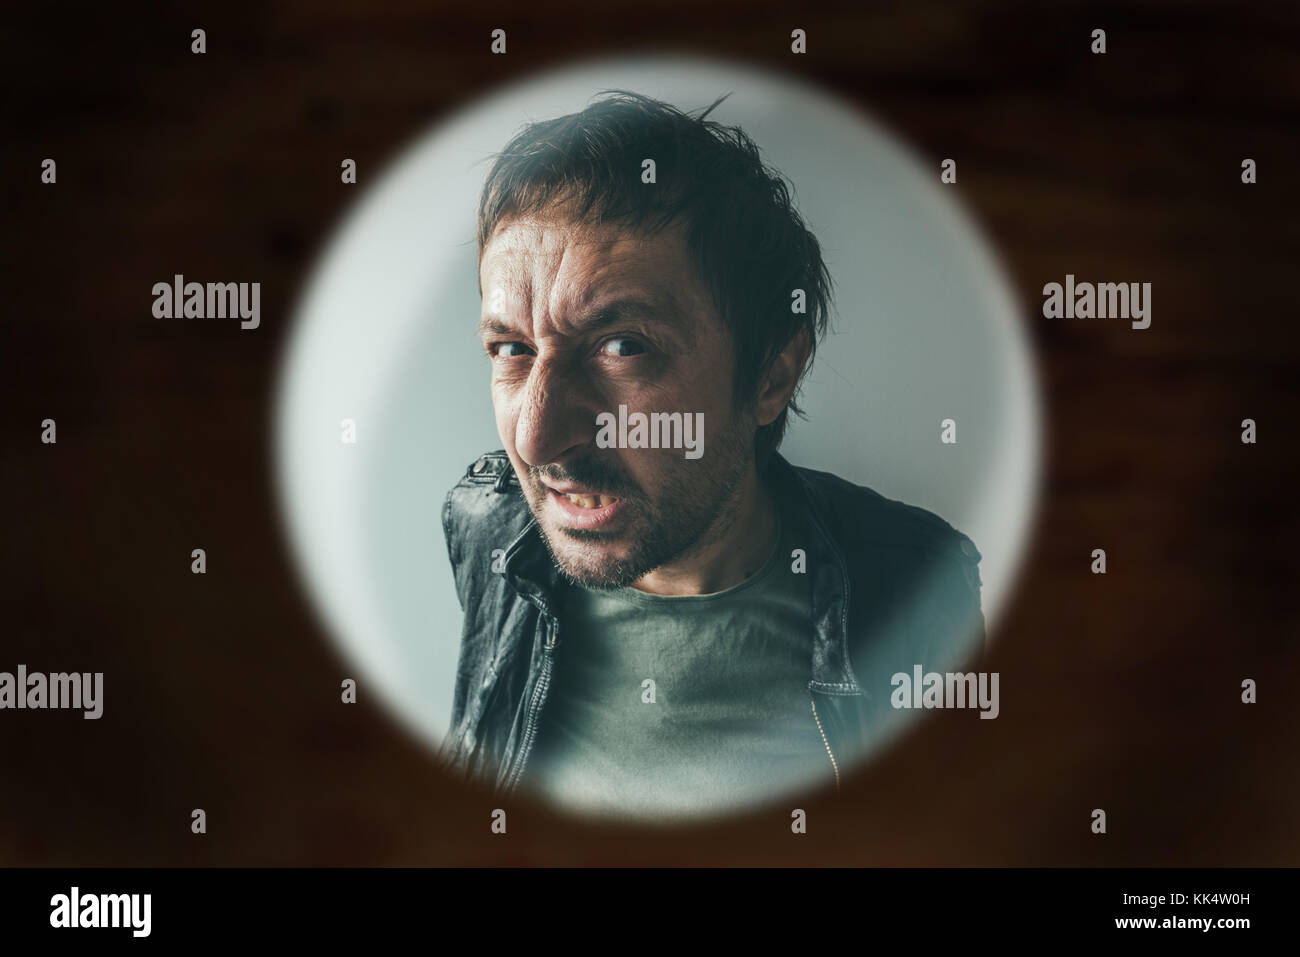 Angry man at the door viewed through spy hole, debt collector or criminal knocking at the door - Stock Image